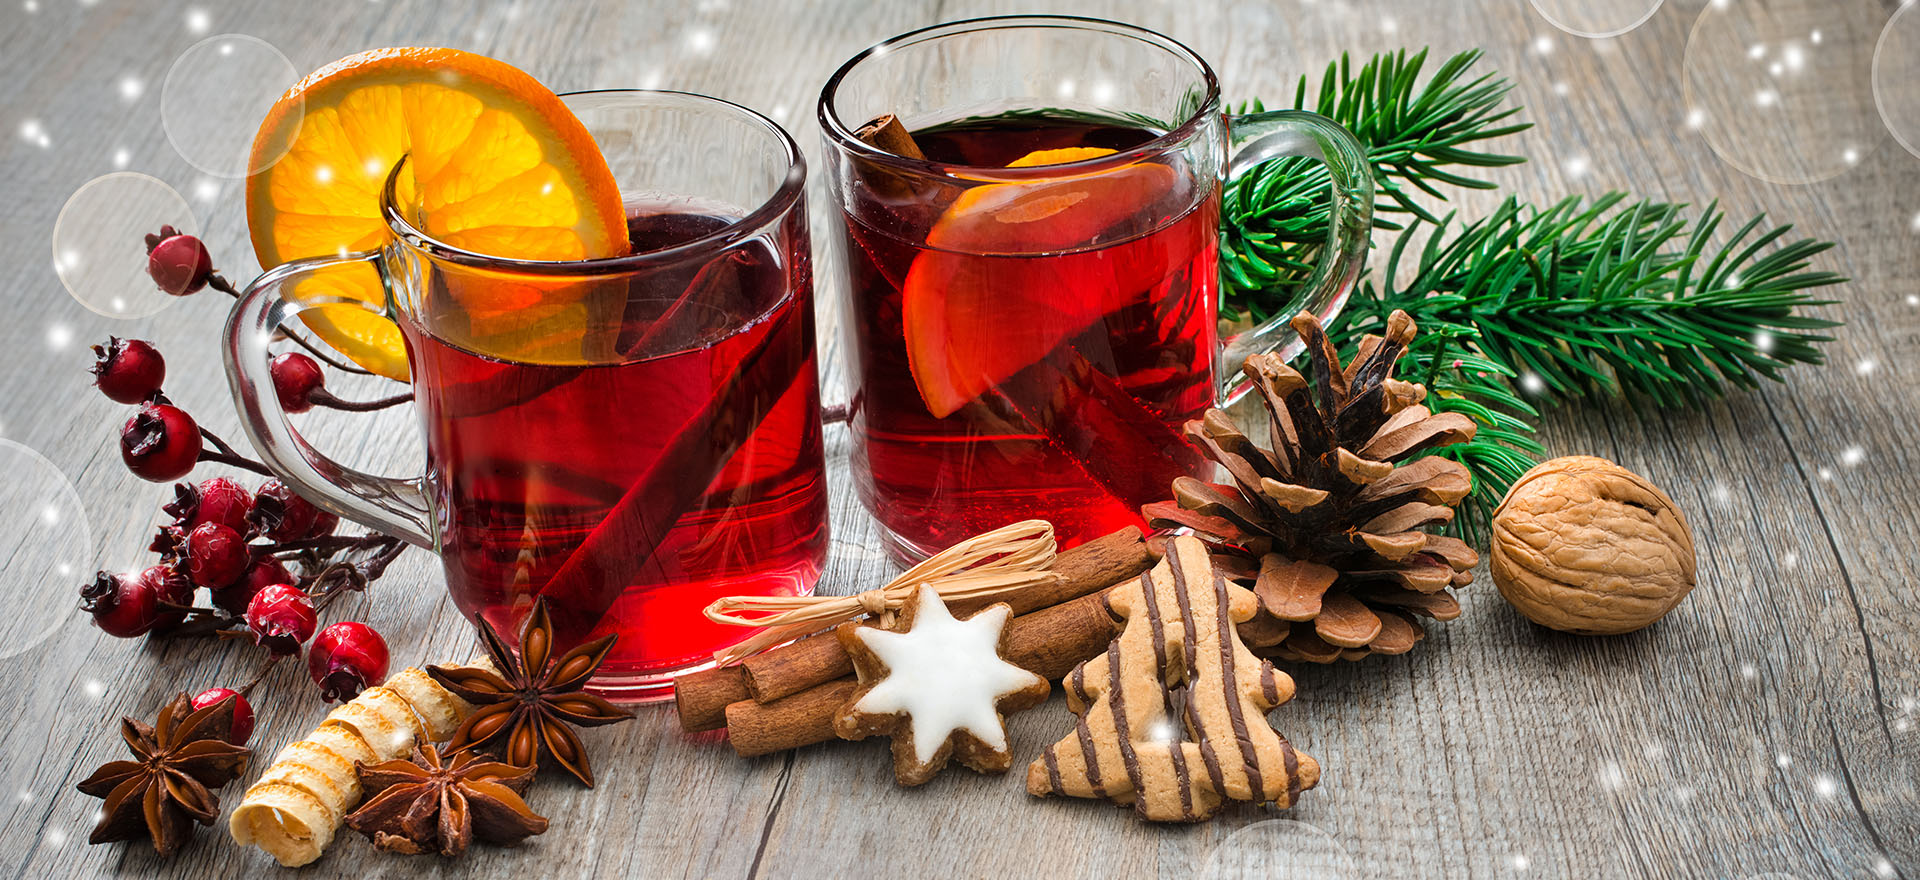 Chritsmas drinks with orange and pine cones